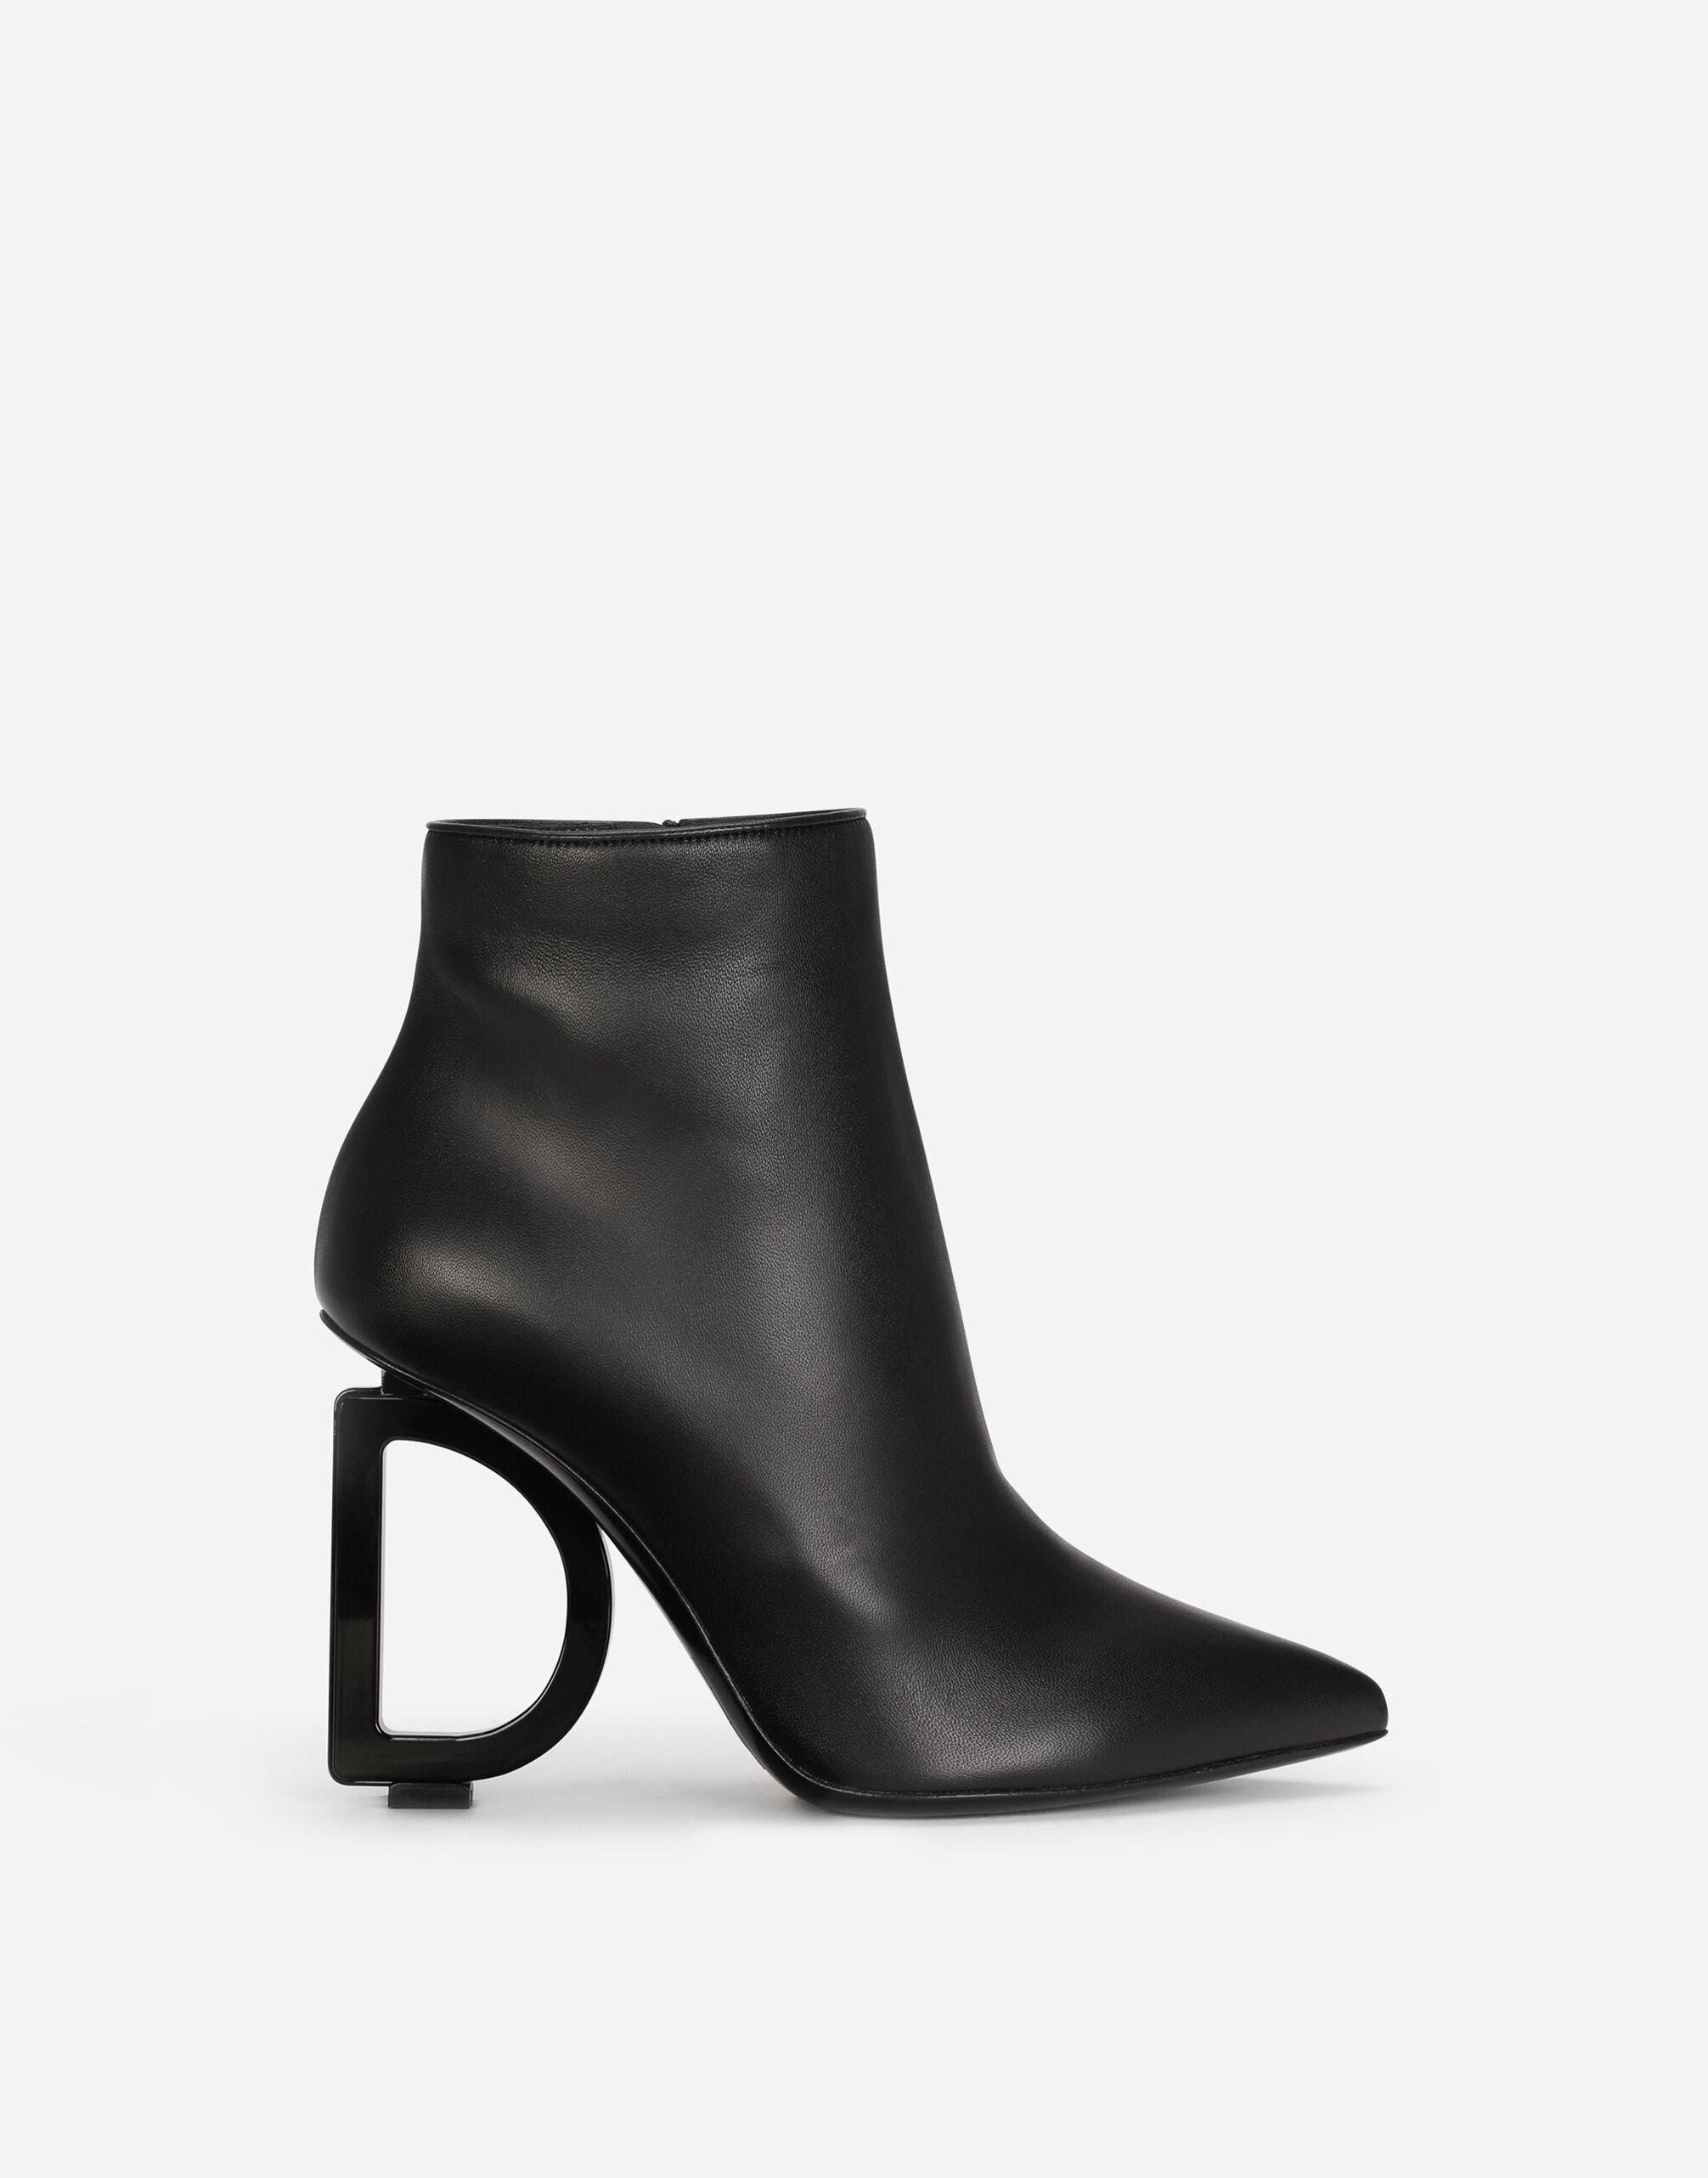 Nappa leather ankle boots with DG heel